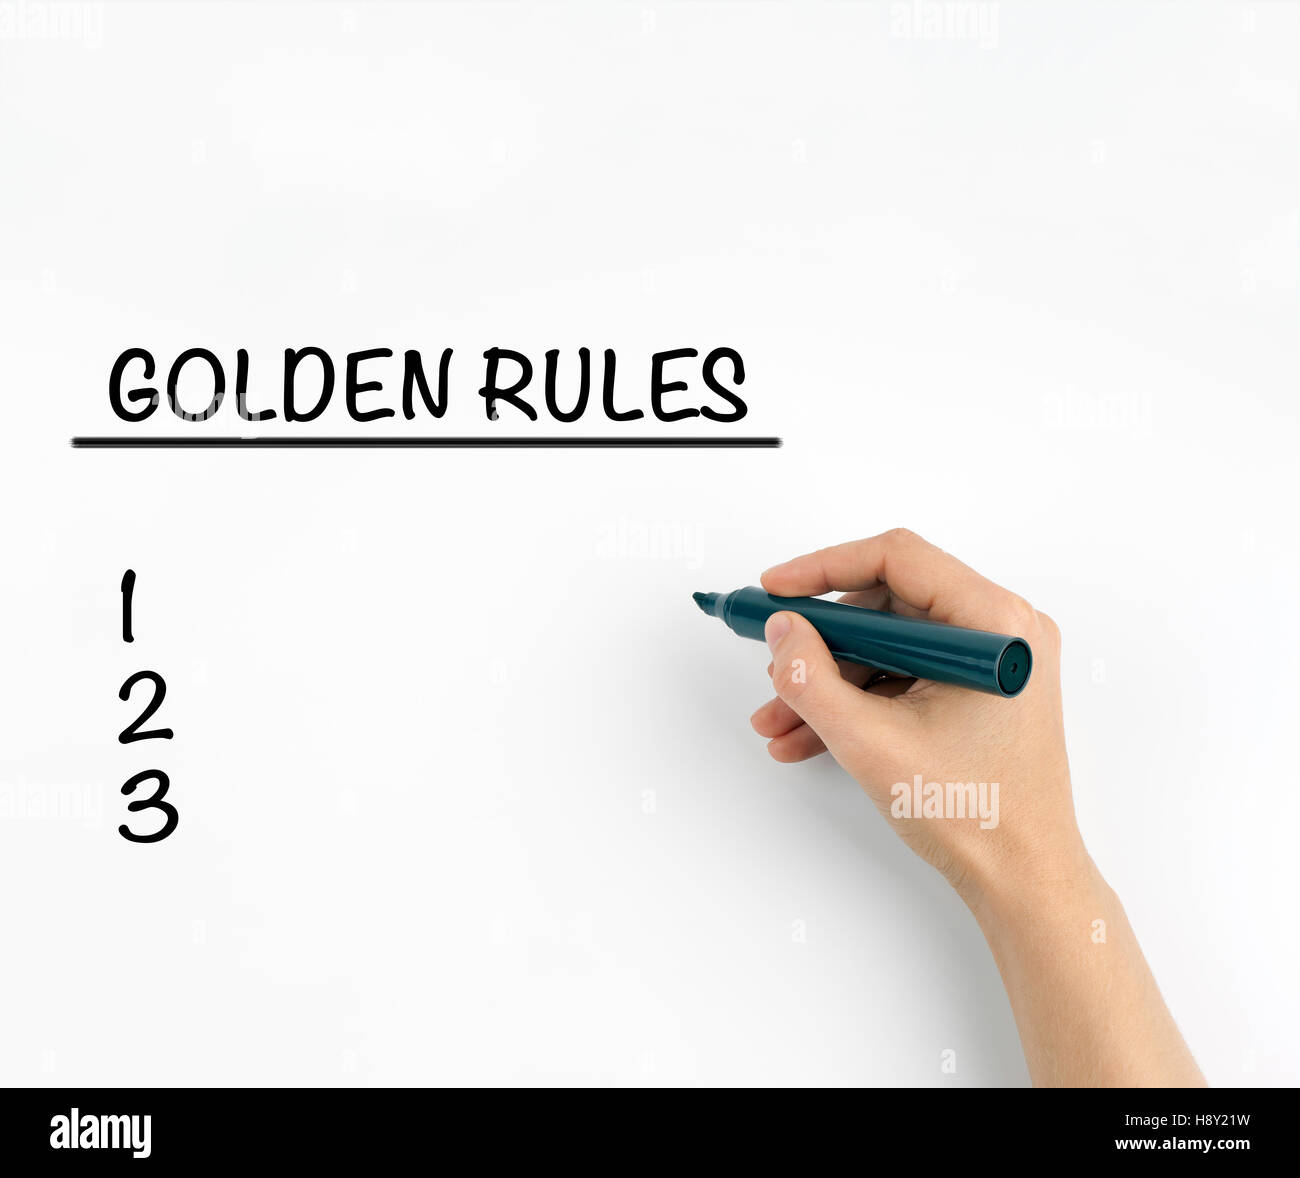 Golden Rules on a white background - Stock Image